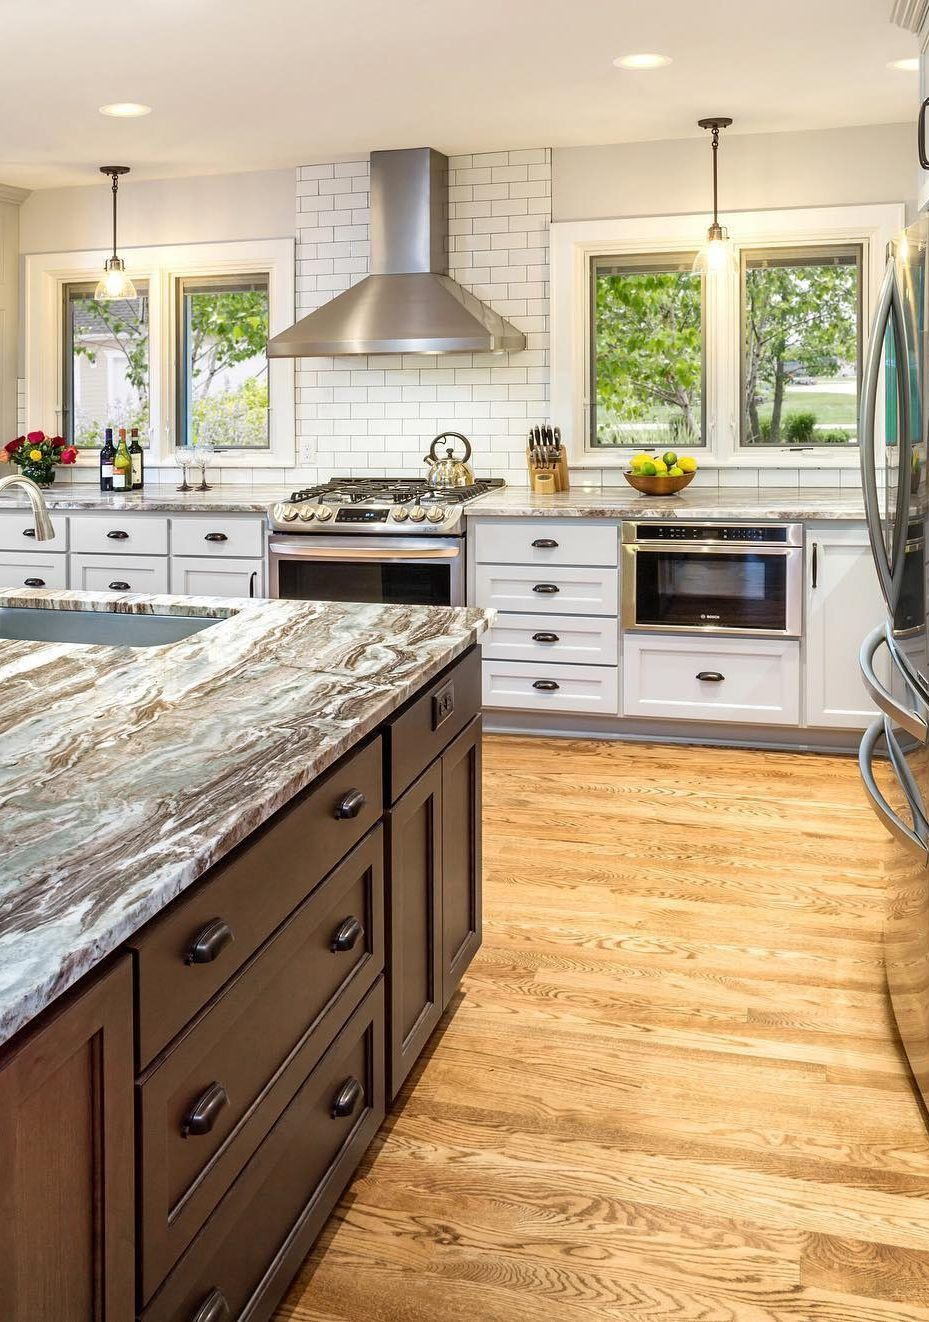 34 beauty latest kitchen design trends ideas for 2019 part 14 latest kitchen designs kitchen on kitchen decor trends id=78276